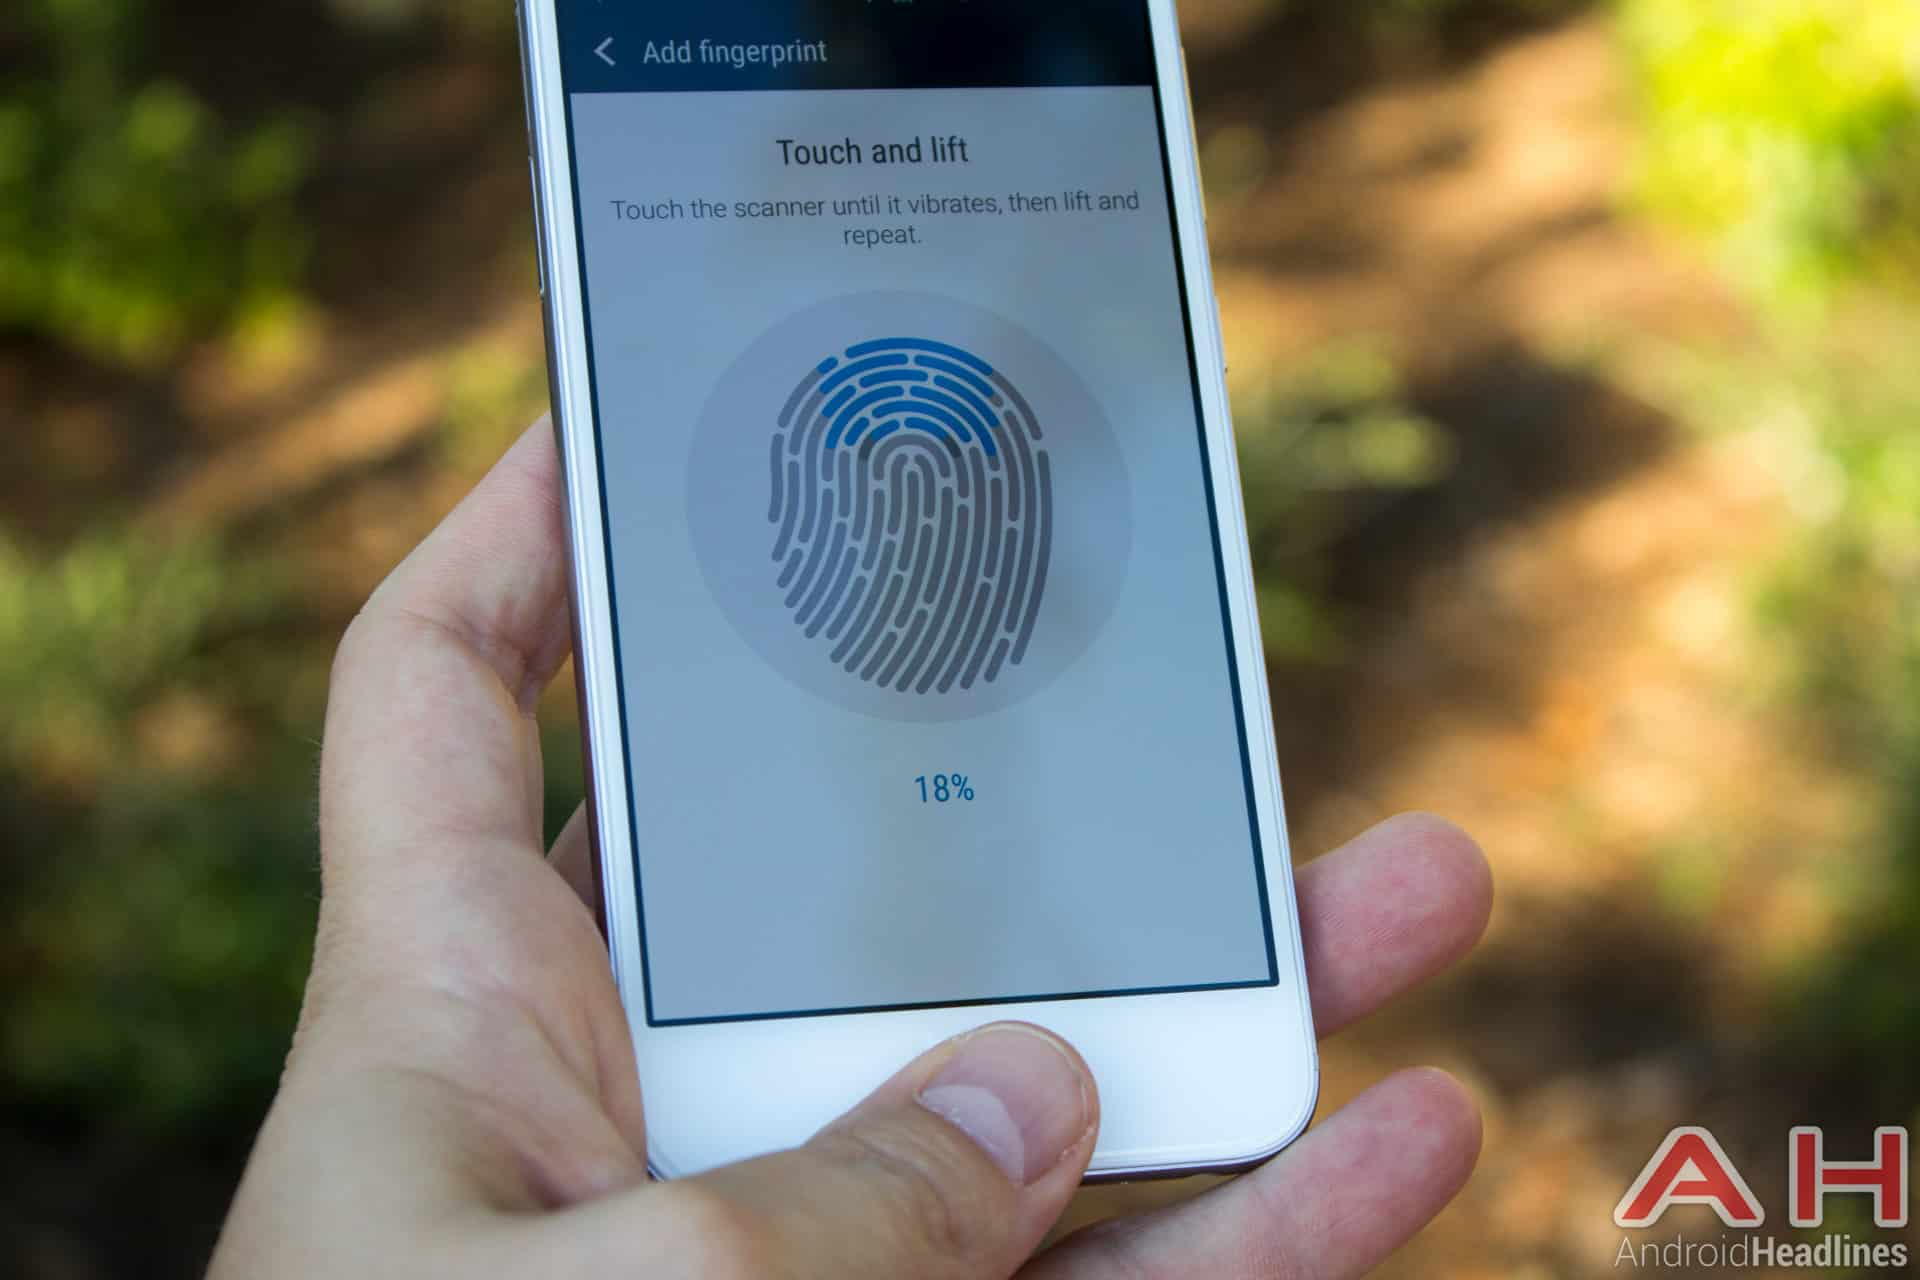 HTC-One-A9-AH-fingerprint